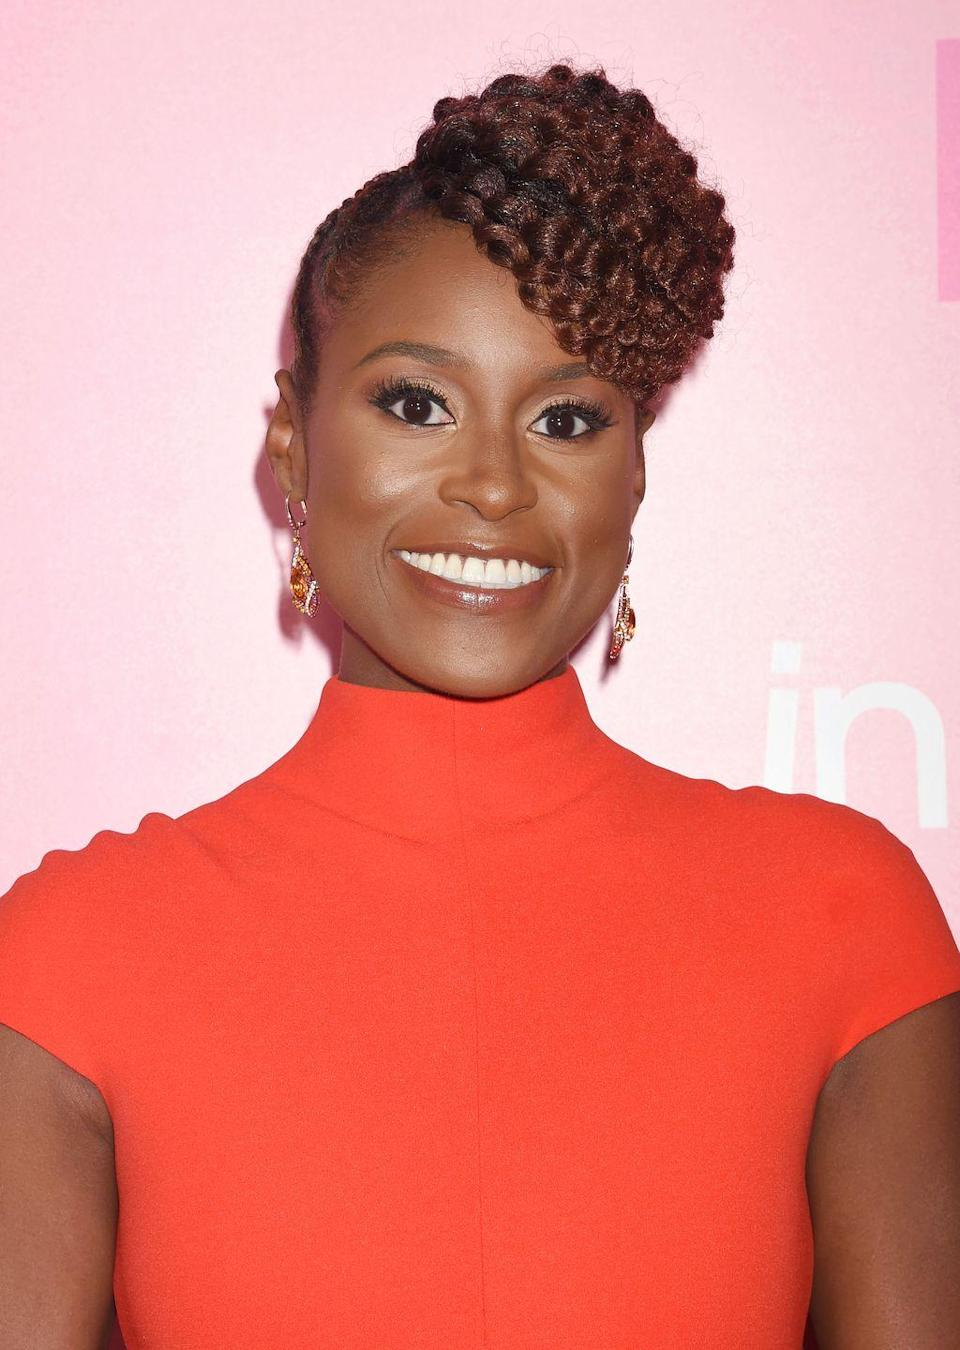 """<p>An unexptected twist on fringe, <strong>Issa Rae</strong> rocks a braided updo with <a href=""""https://www.goodhousekeeping.com/beauty/hair/g33267765/types-of-bangs/"""" rel=""""nofollow noopener"""" target=""""_blank"""" data-ylk=""""slk:a textured bang"""" class=""""link rapid-noclick-resp"""">a textured bang</a>. This protective style is easy to maintain when you sleep. Re-twist the front of the bangs to maintain definition and tie your hair down to keep the sides sleek. </p>"""